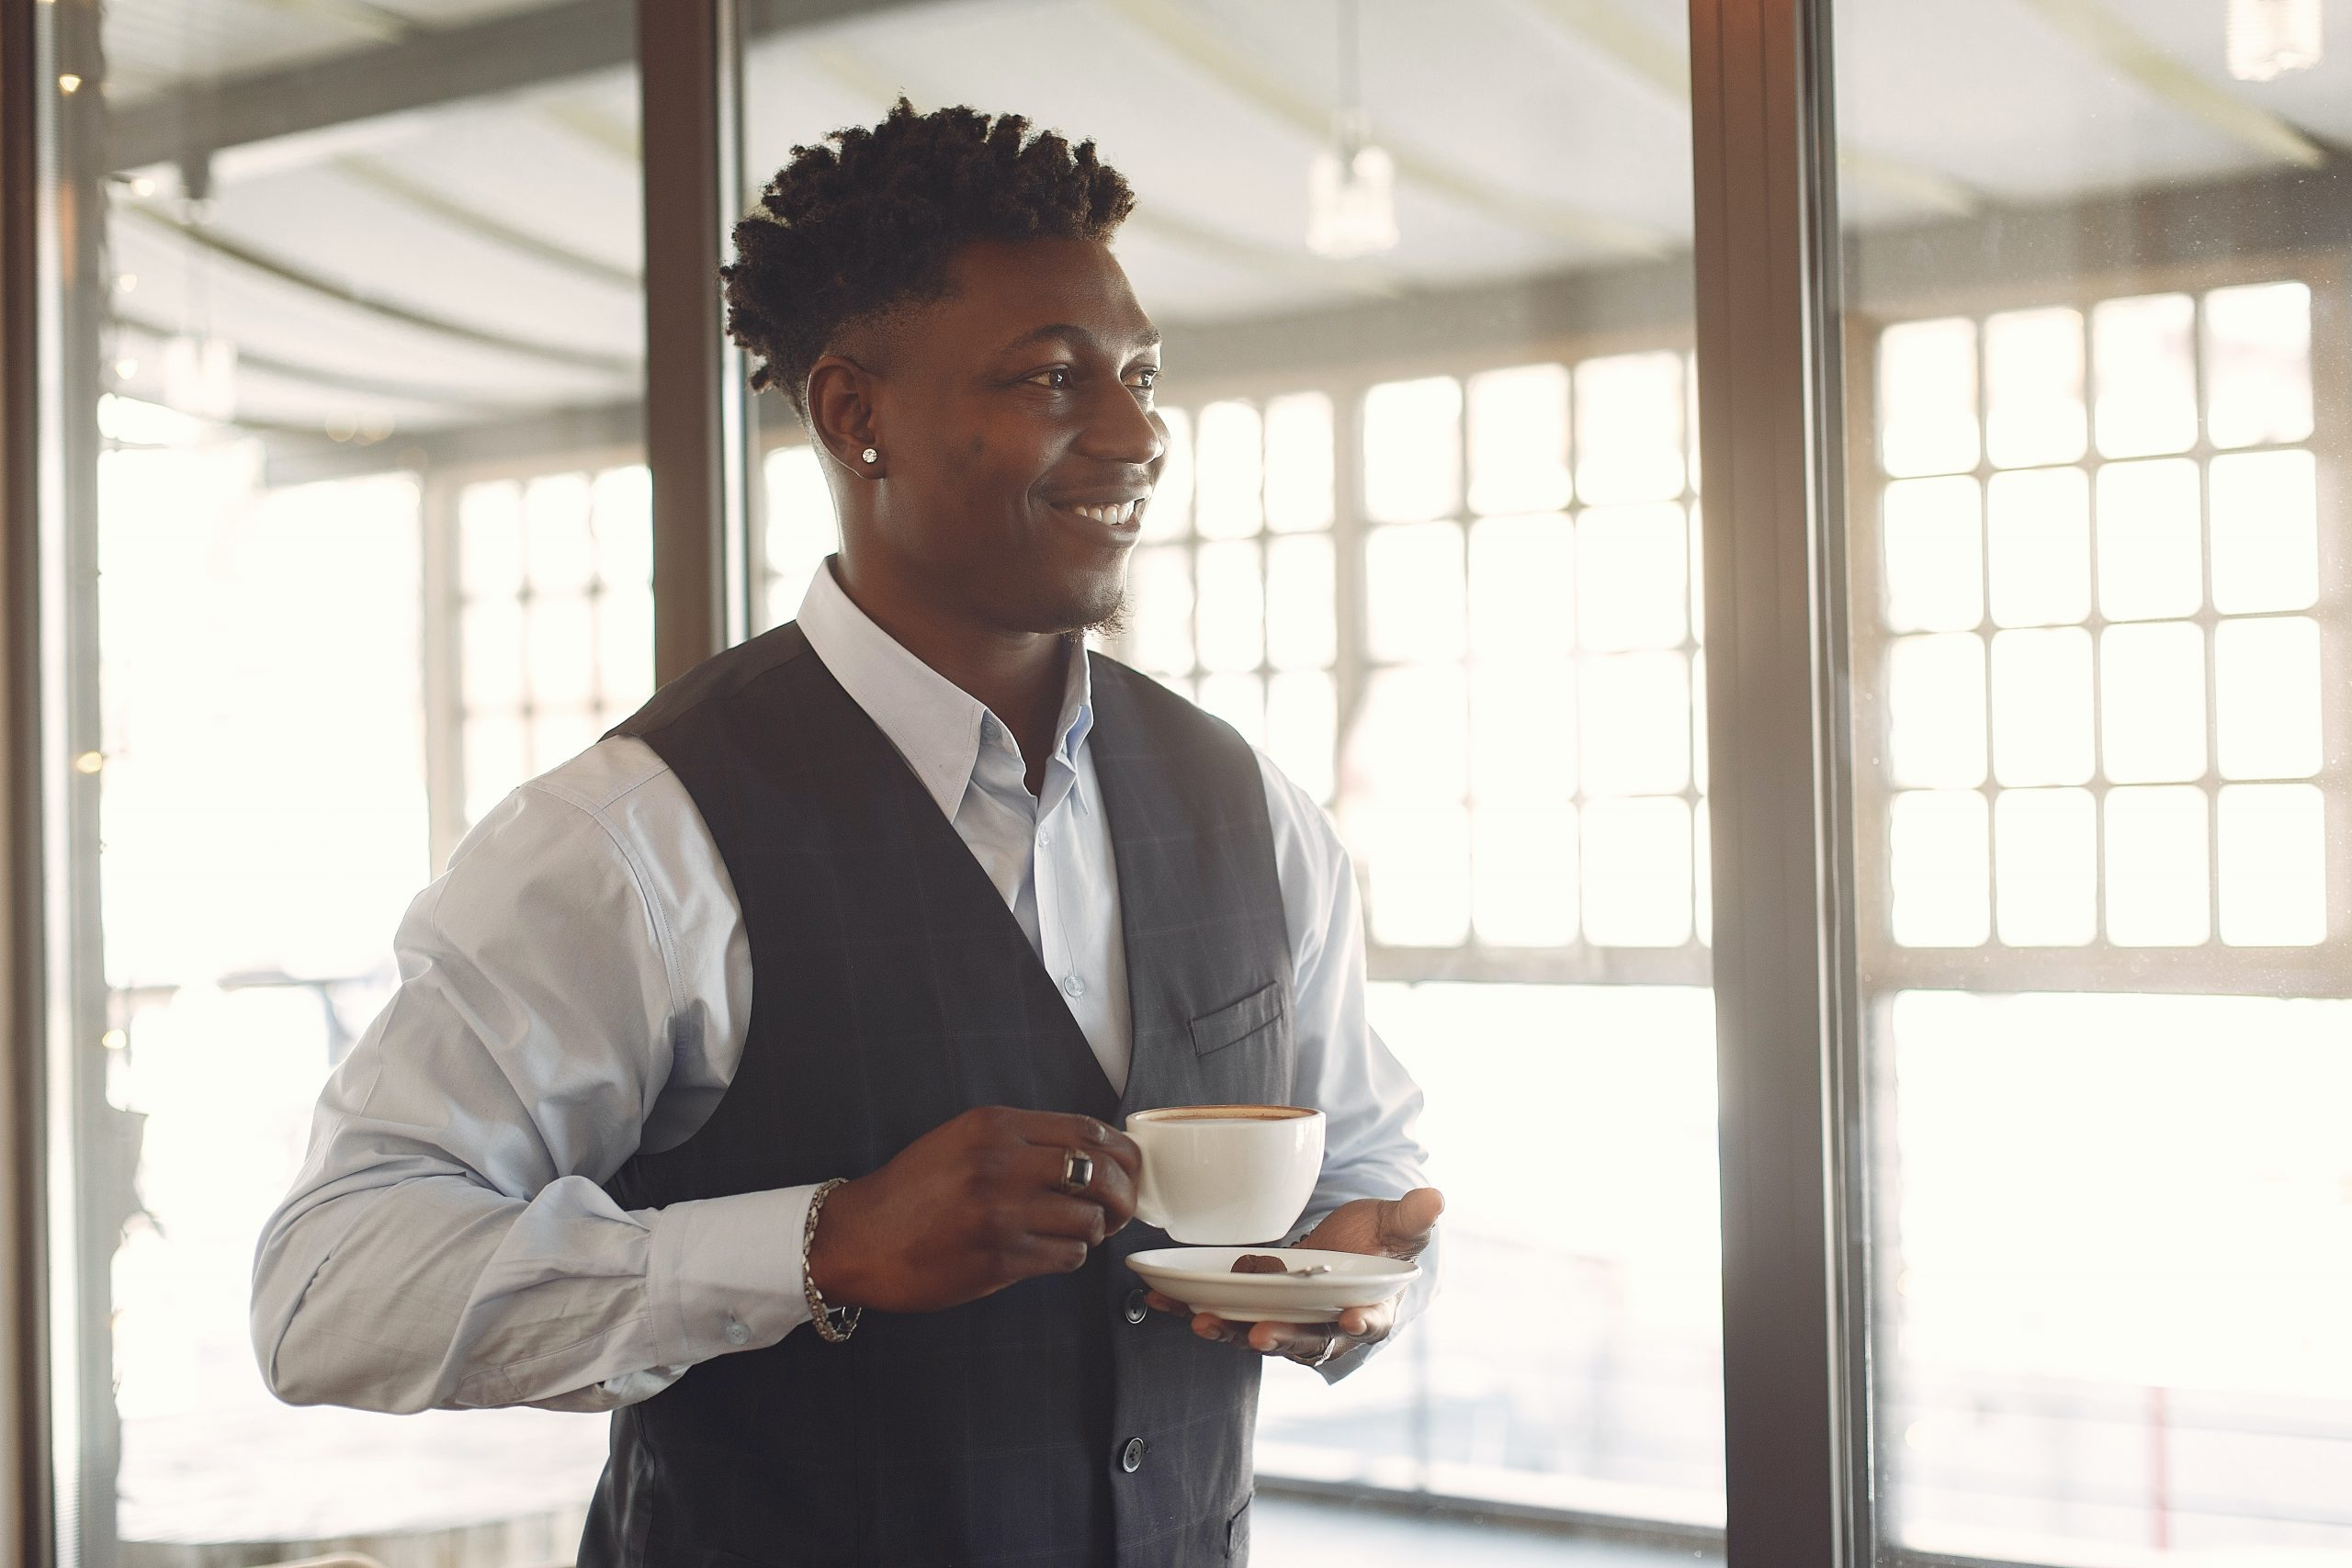 smiling young ethnic man drinking coffee in cafe near window 3873735 scaled